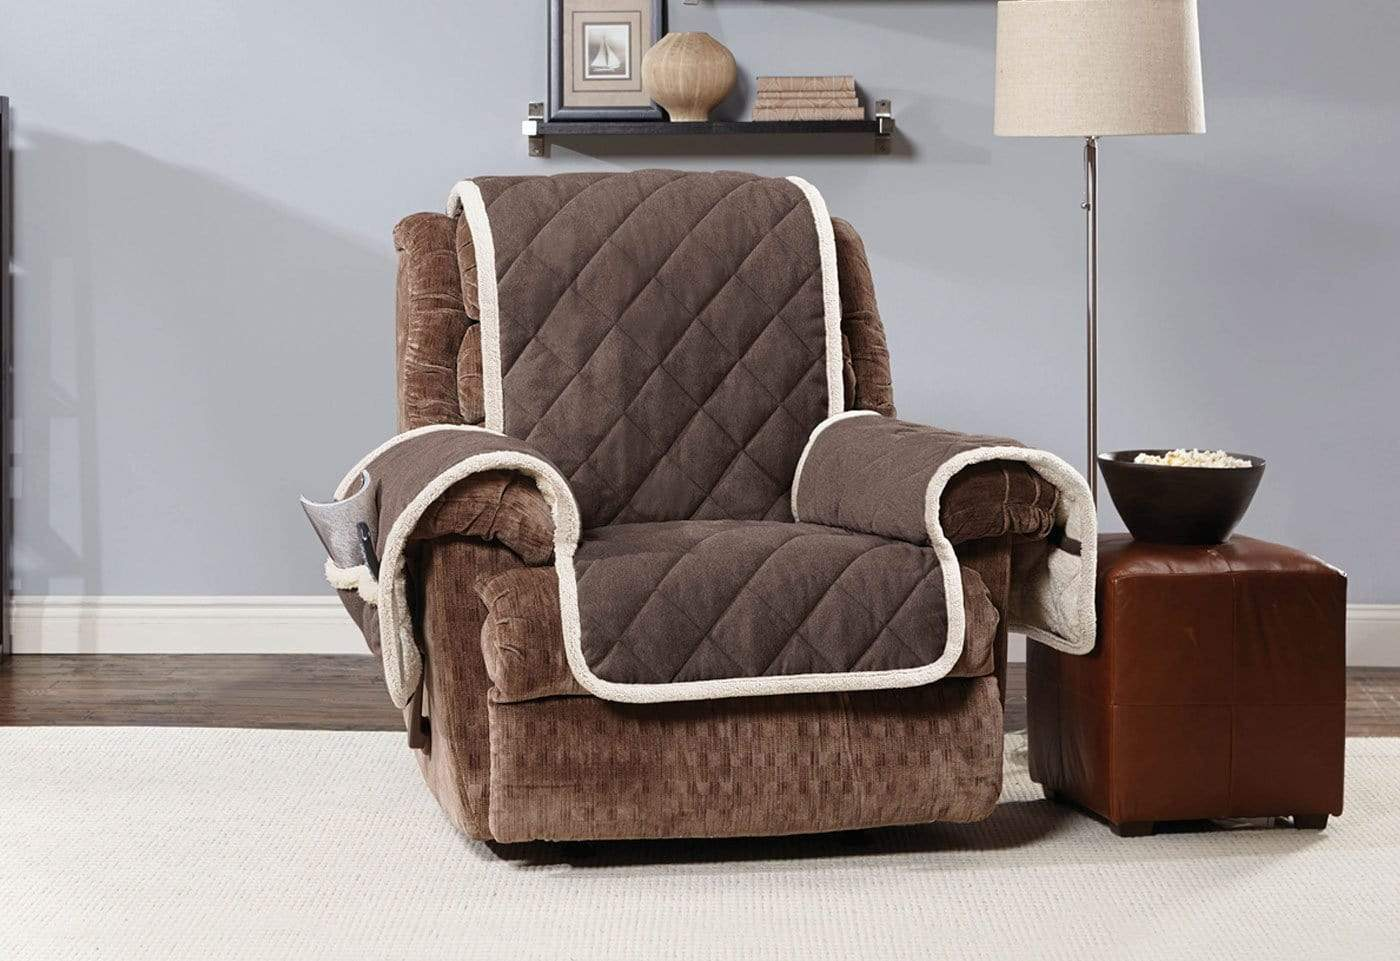 Soft Suede & Sherpa Recliner Furniture Cover 100% Polyester Pet Furniture Cover Machine Washable - Recliner / Chocolate